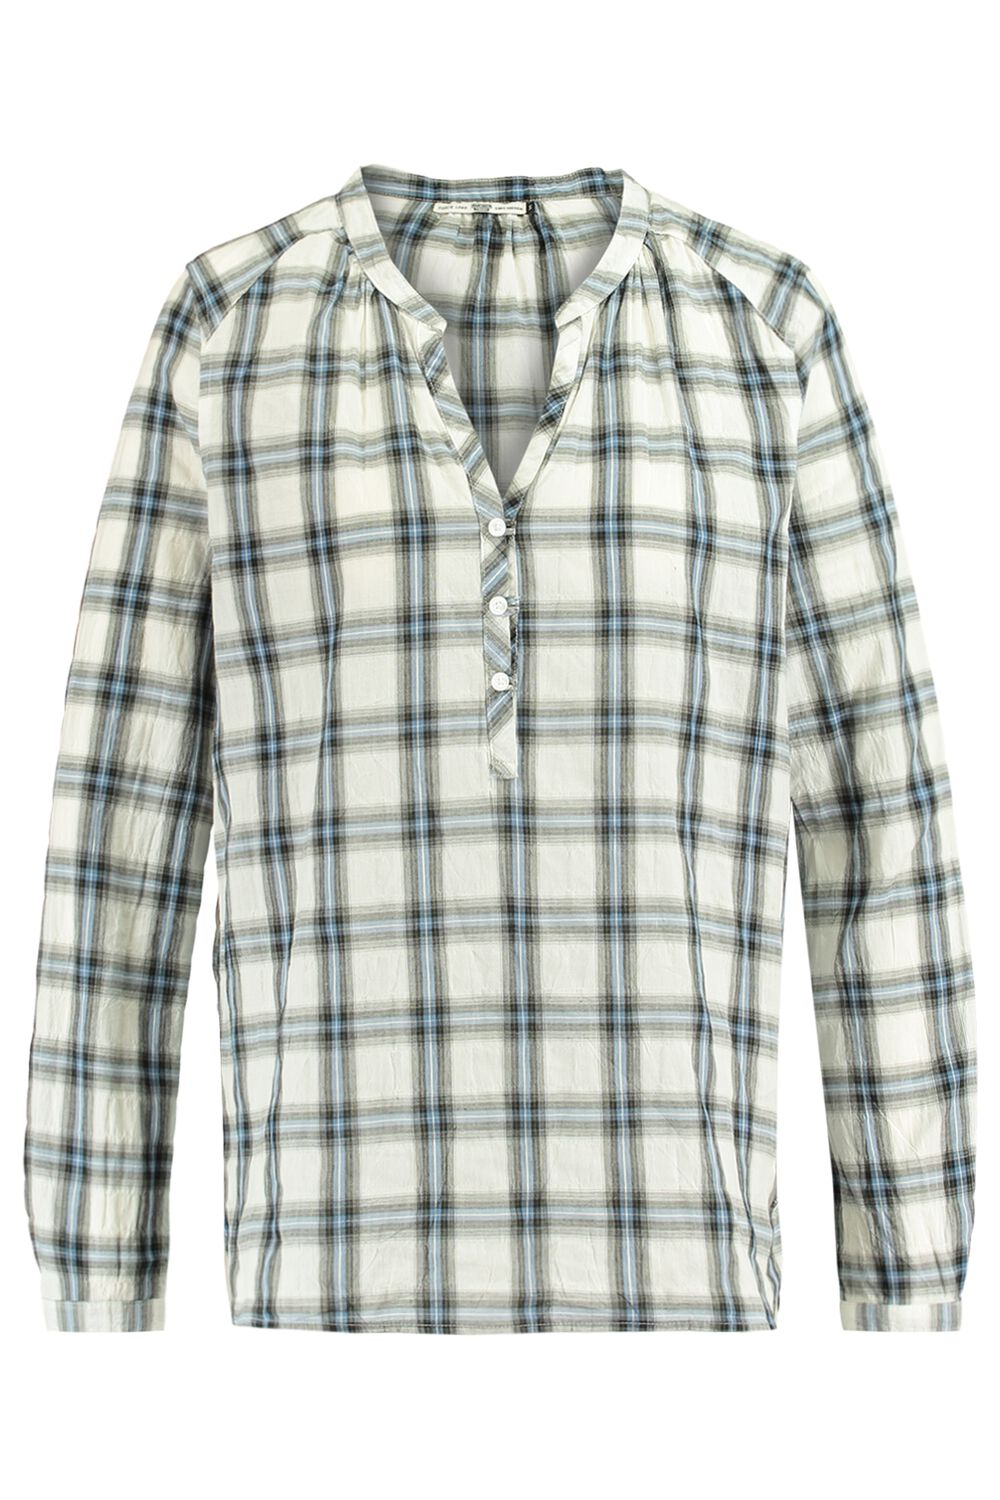 America Today Dames Blouse Beth Blauw